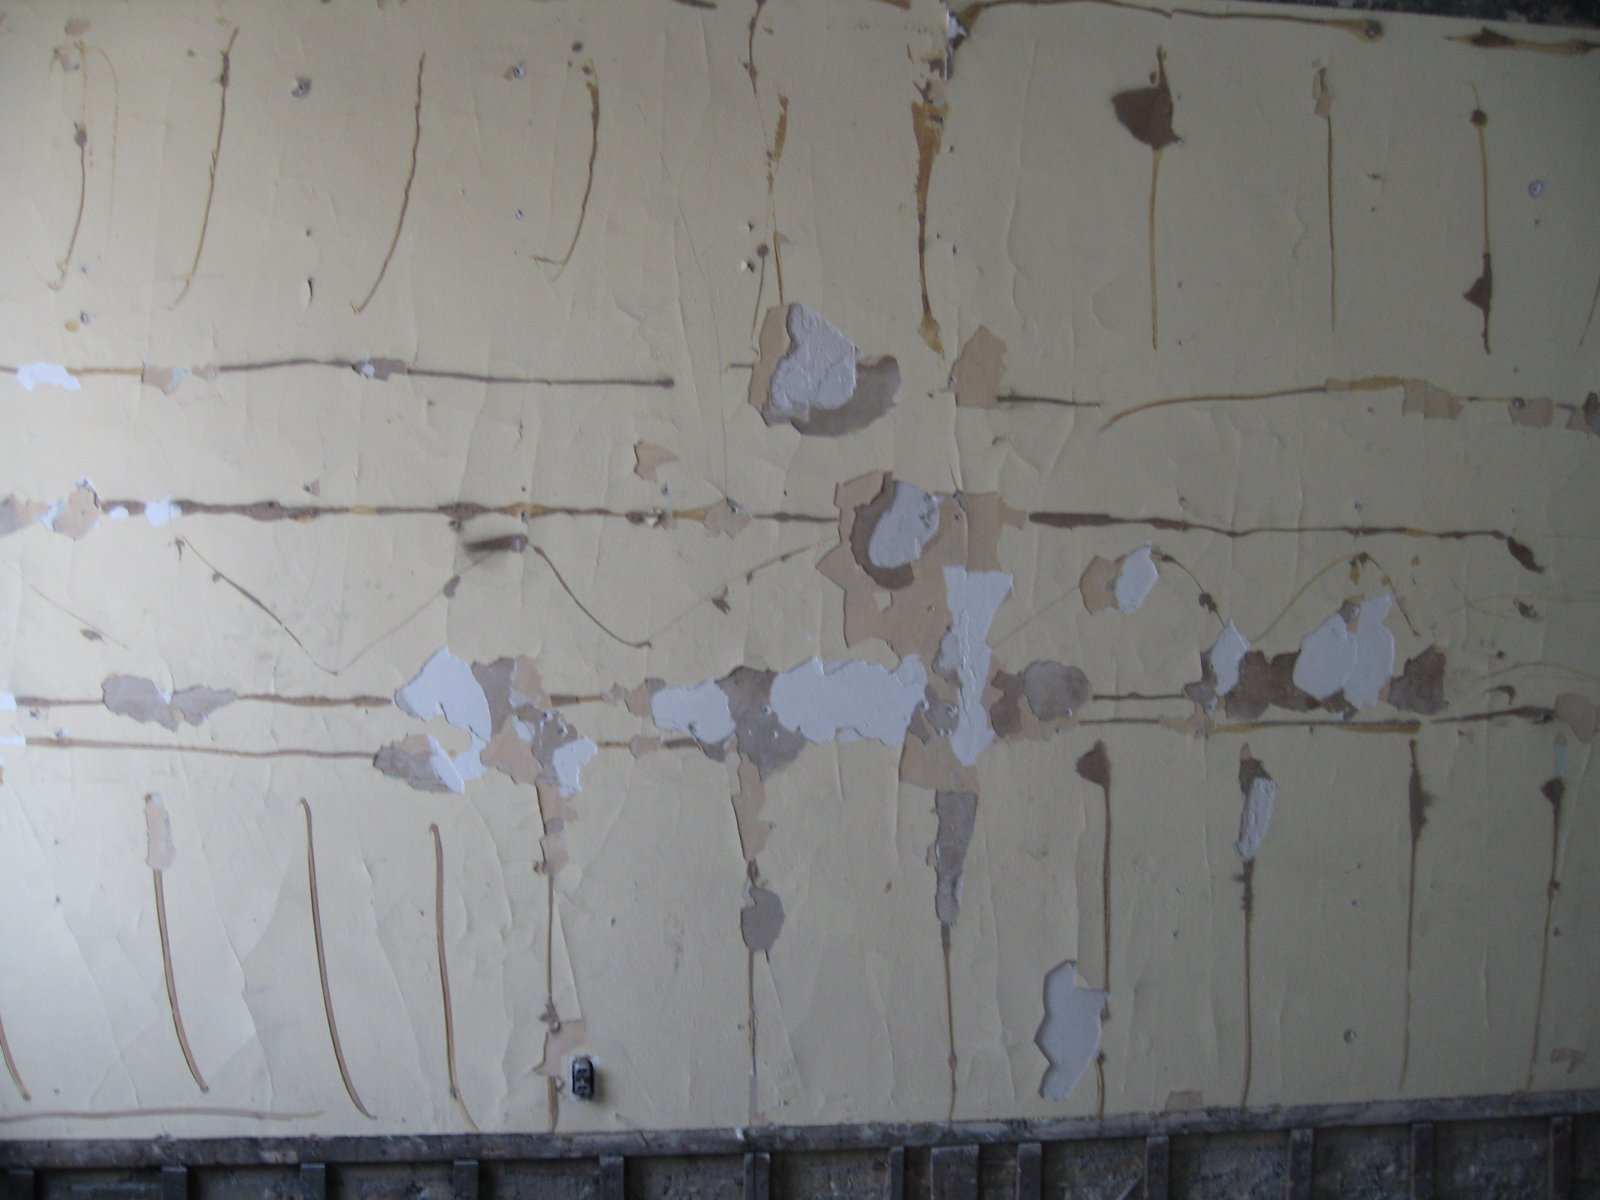 Old plaster walls show years of painting and repainting